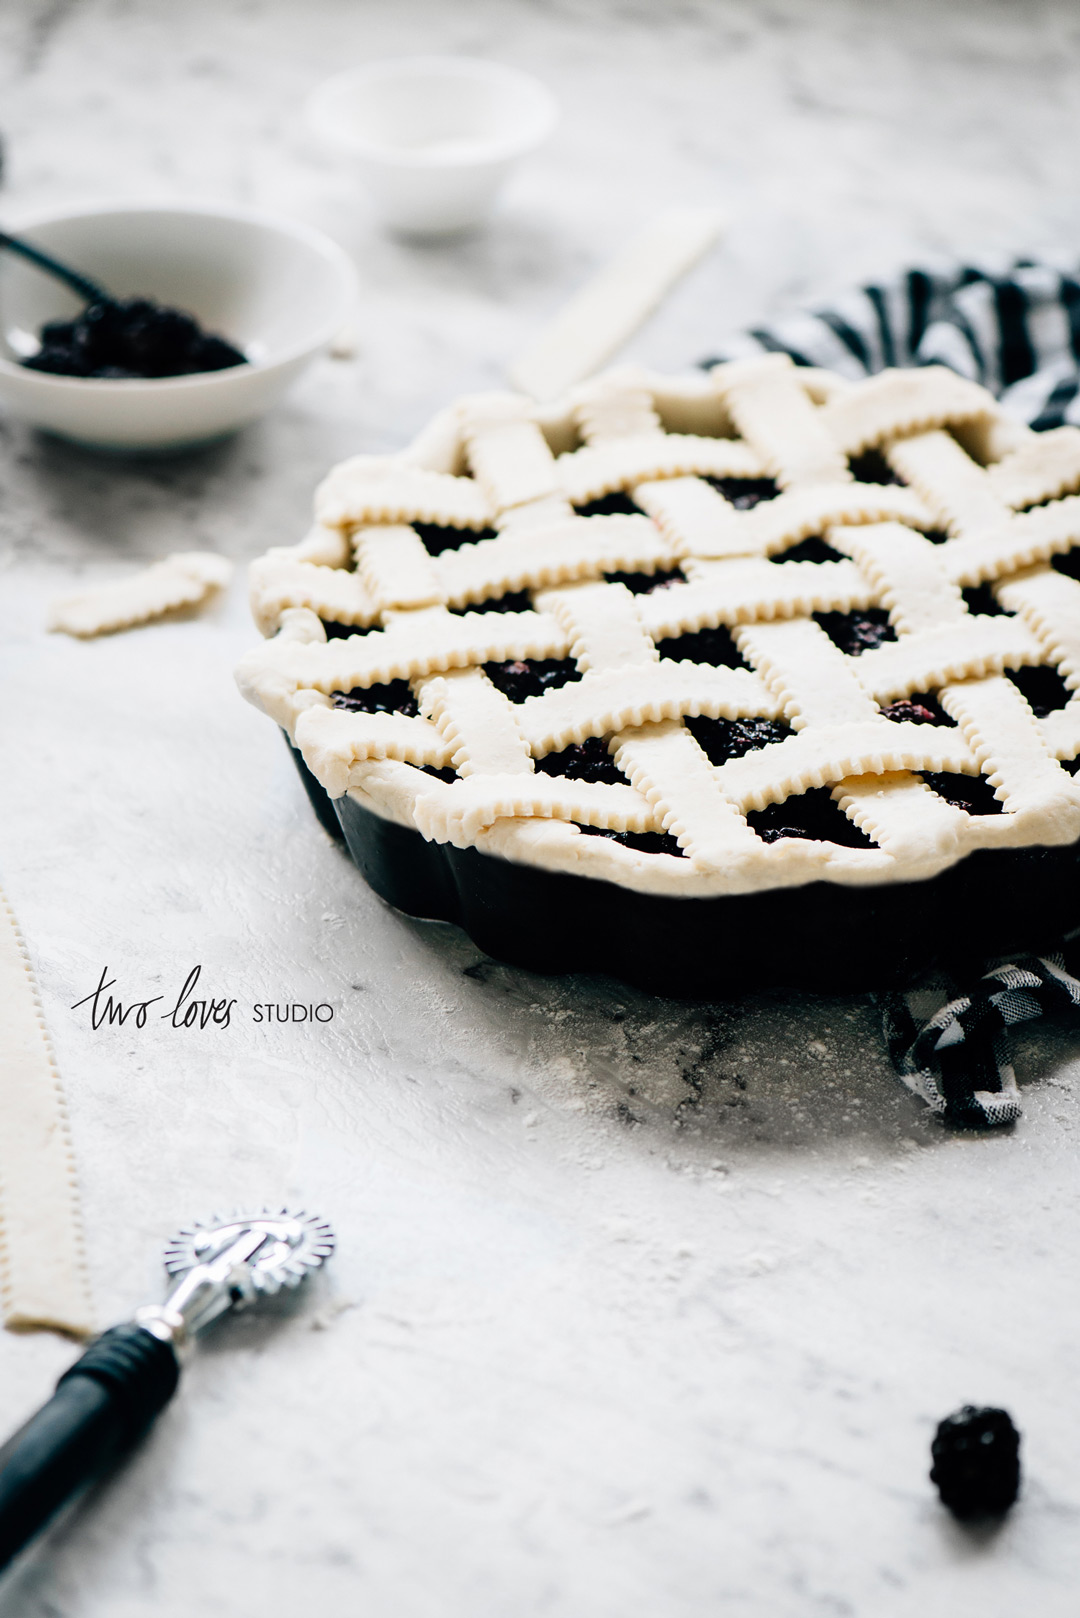 Two Loves Studio Black White Food Photography Blackberry Pie